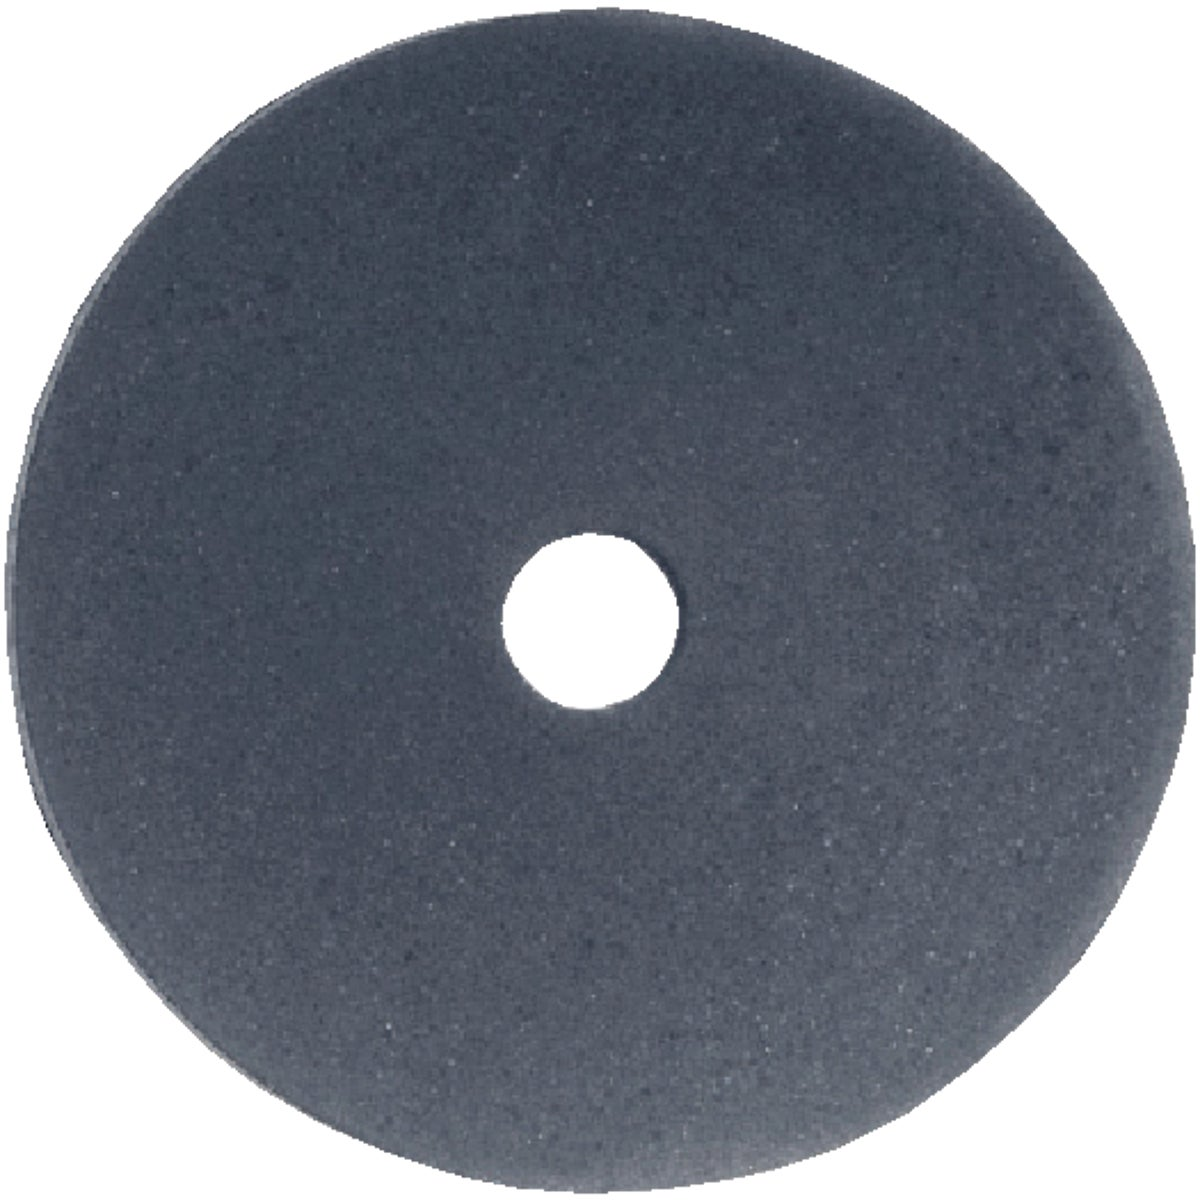 "1-1/4""OD WASHER - 61804B by Danco Perfect Match"